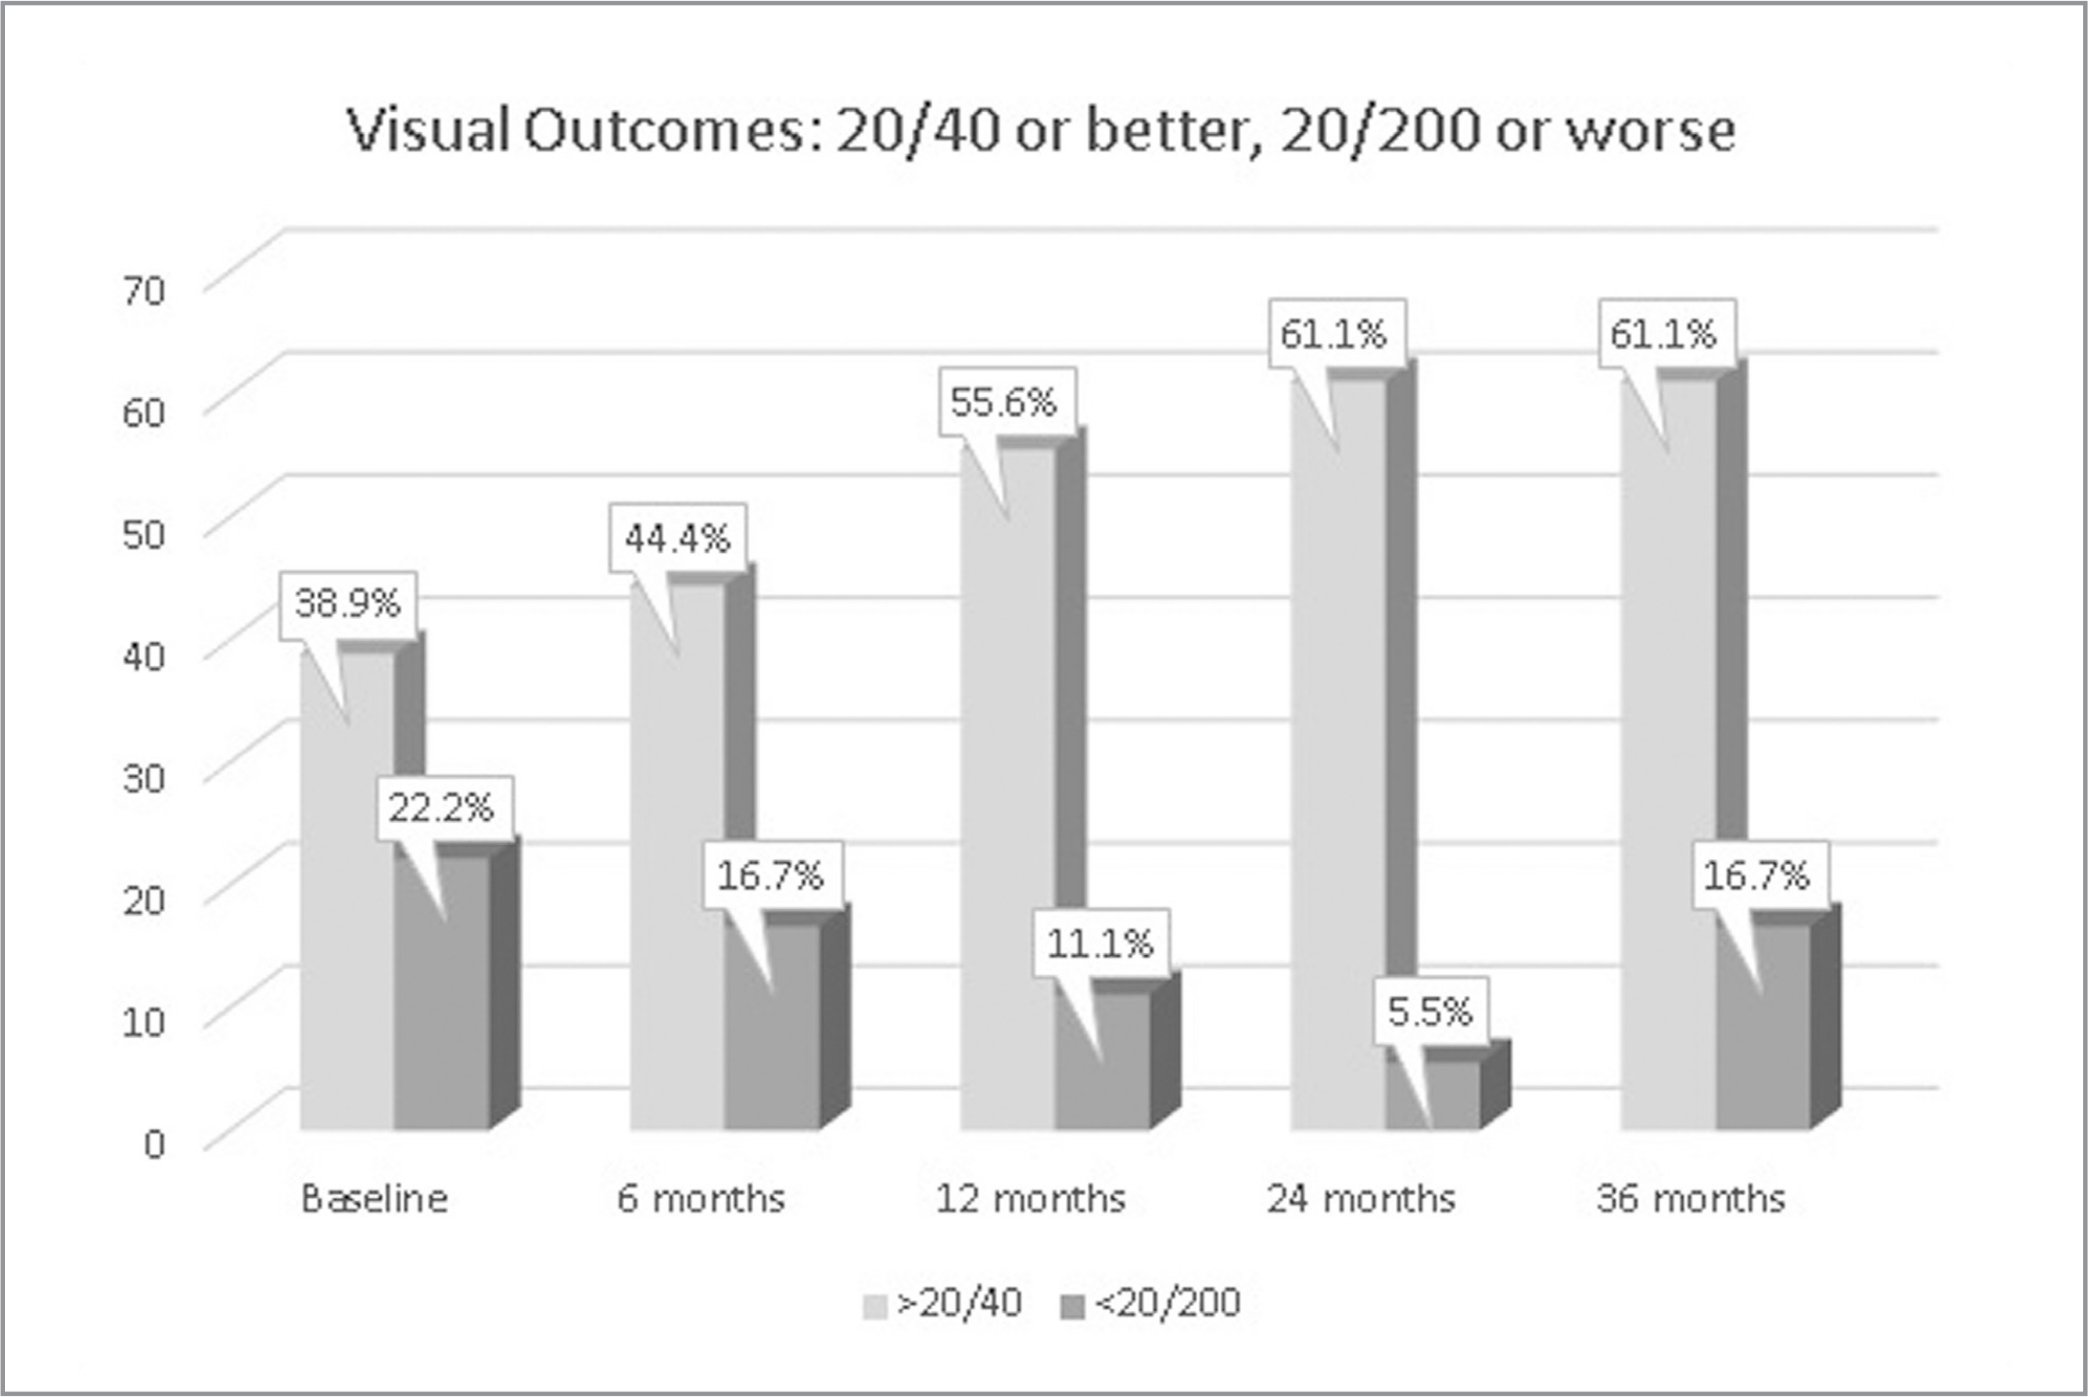 Percentage of patients whose visual acuity was 20/40 or better and 20/200 or worse at baseline and annually during the ASSESS study.